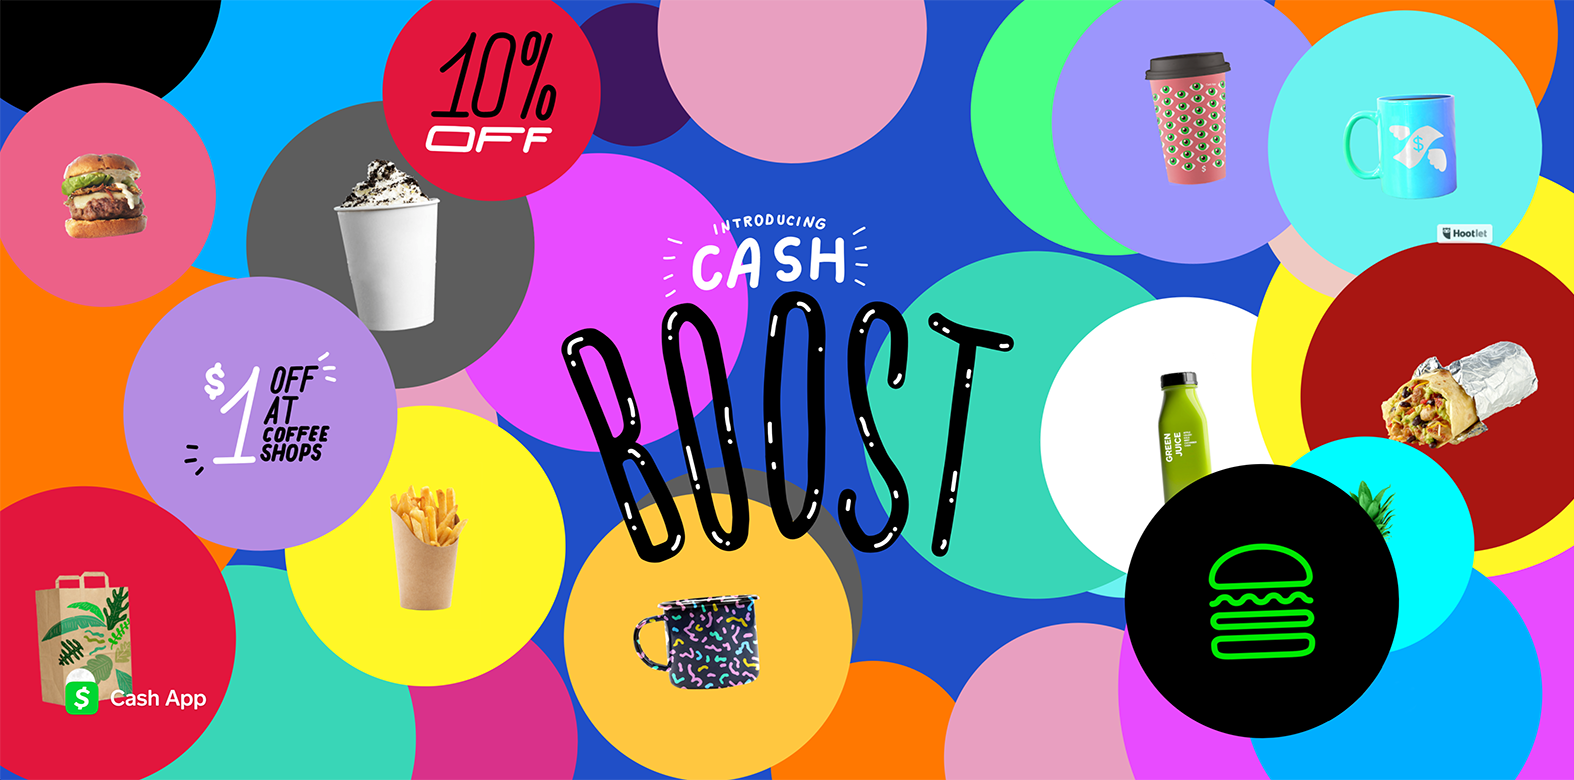 Use Cash App's Boosts to Save $1 Every Time You Buy a Coffee